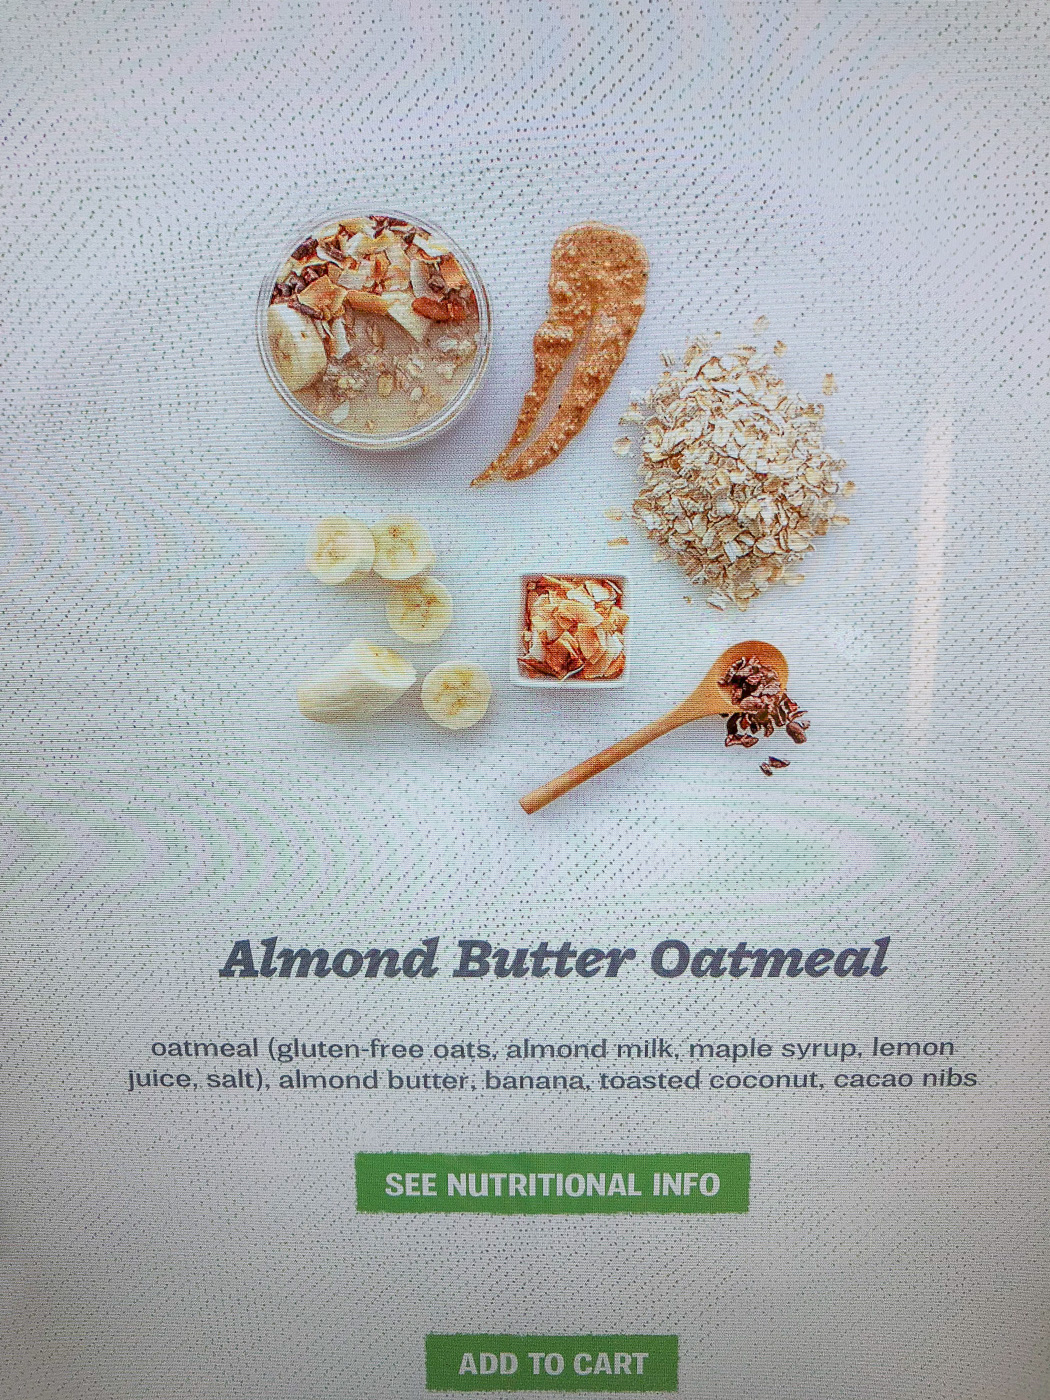 Farmers Fridge Almond Butter Oatmeal Ingredients